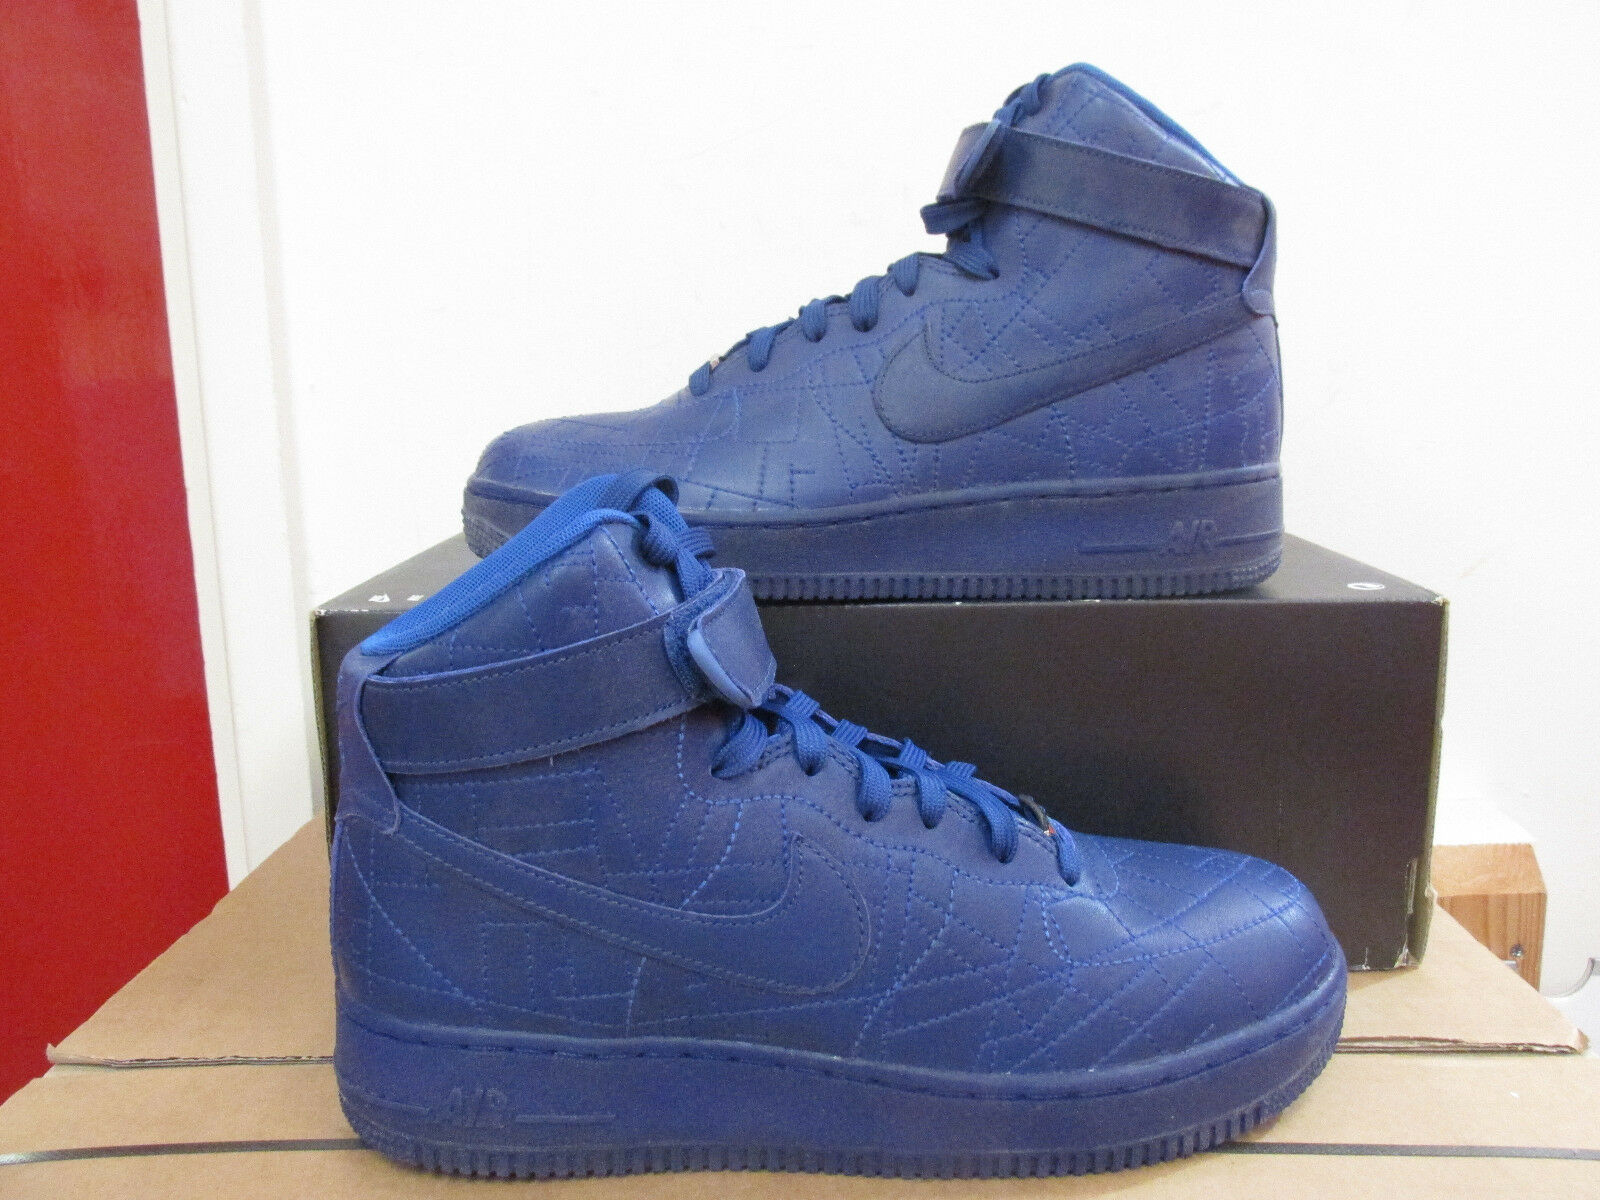 nike  Femme  air force 1 HI FW QS city pack trainers 704010 2018  chaussures  CLEARANCE